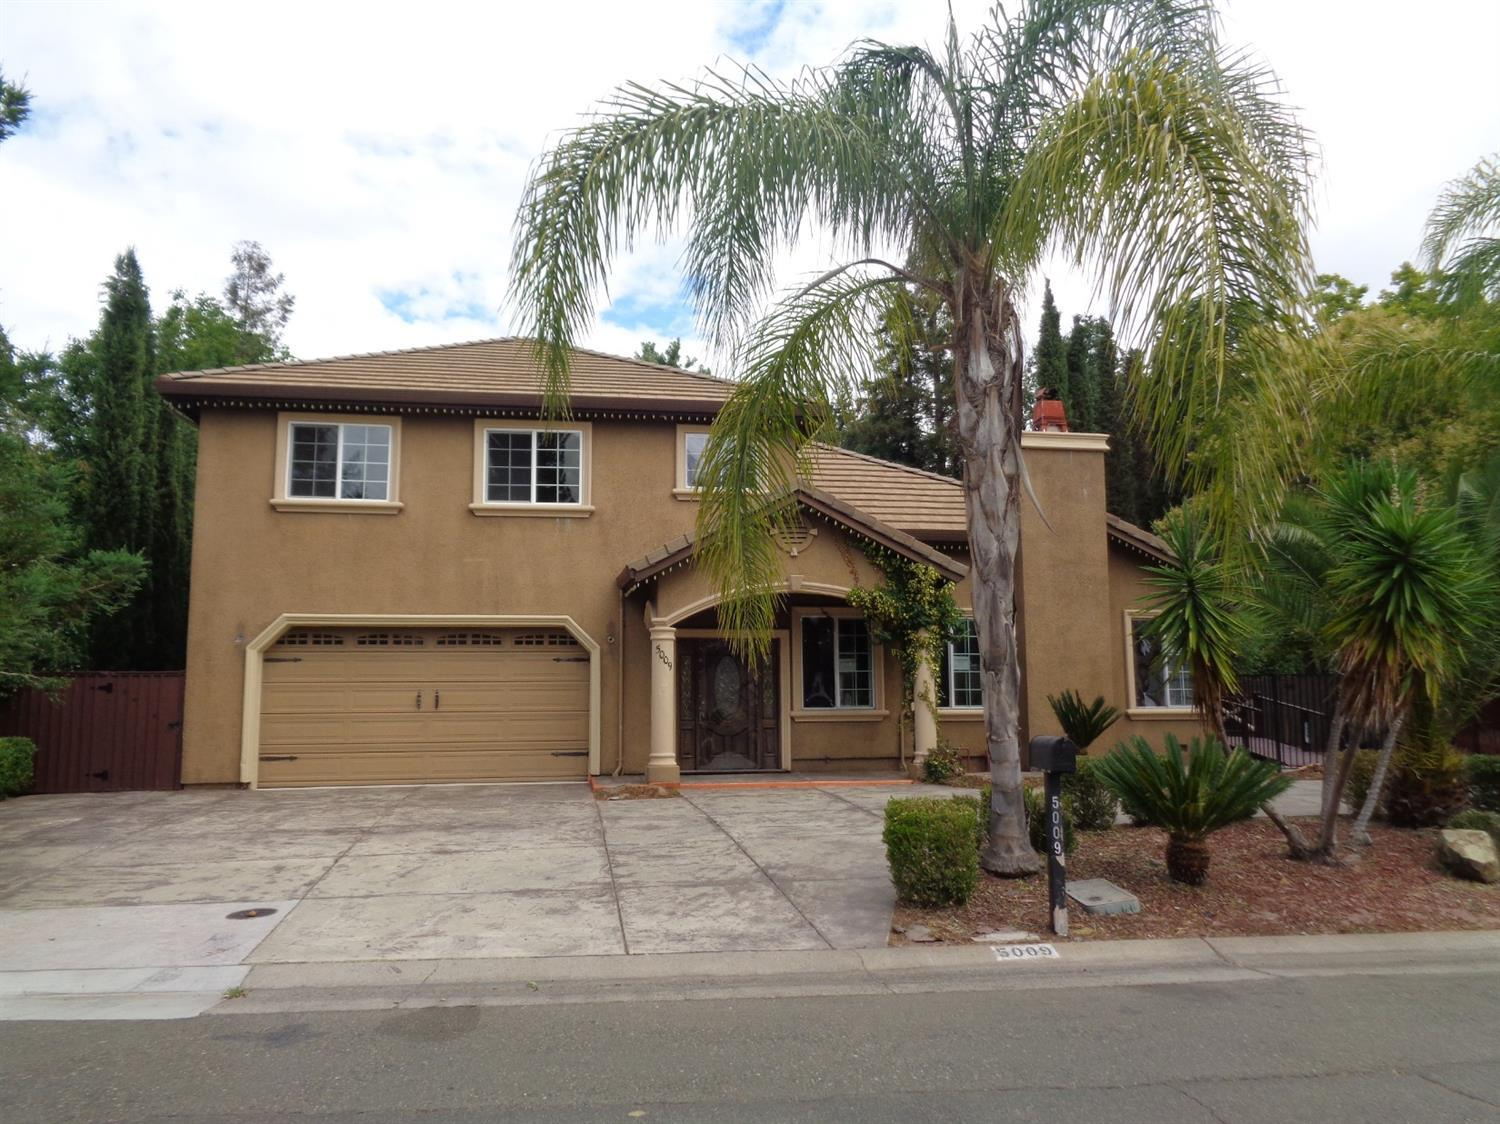 Local Carmichael, CA Real Estate Listings and Homes for Sale | BHGRE